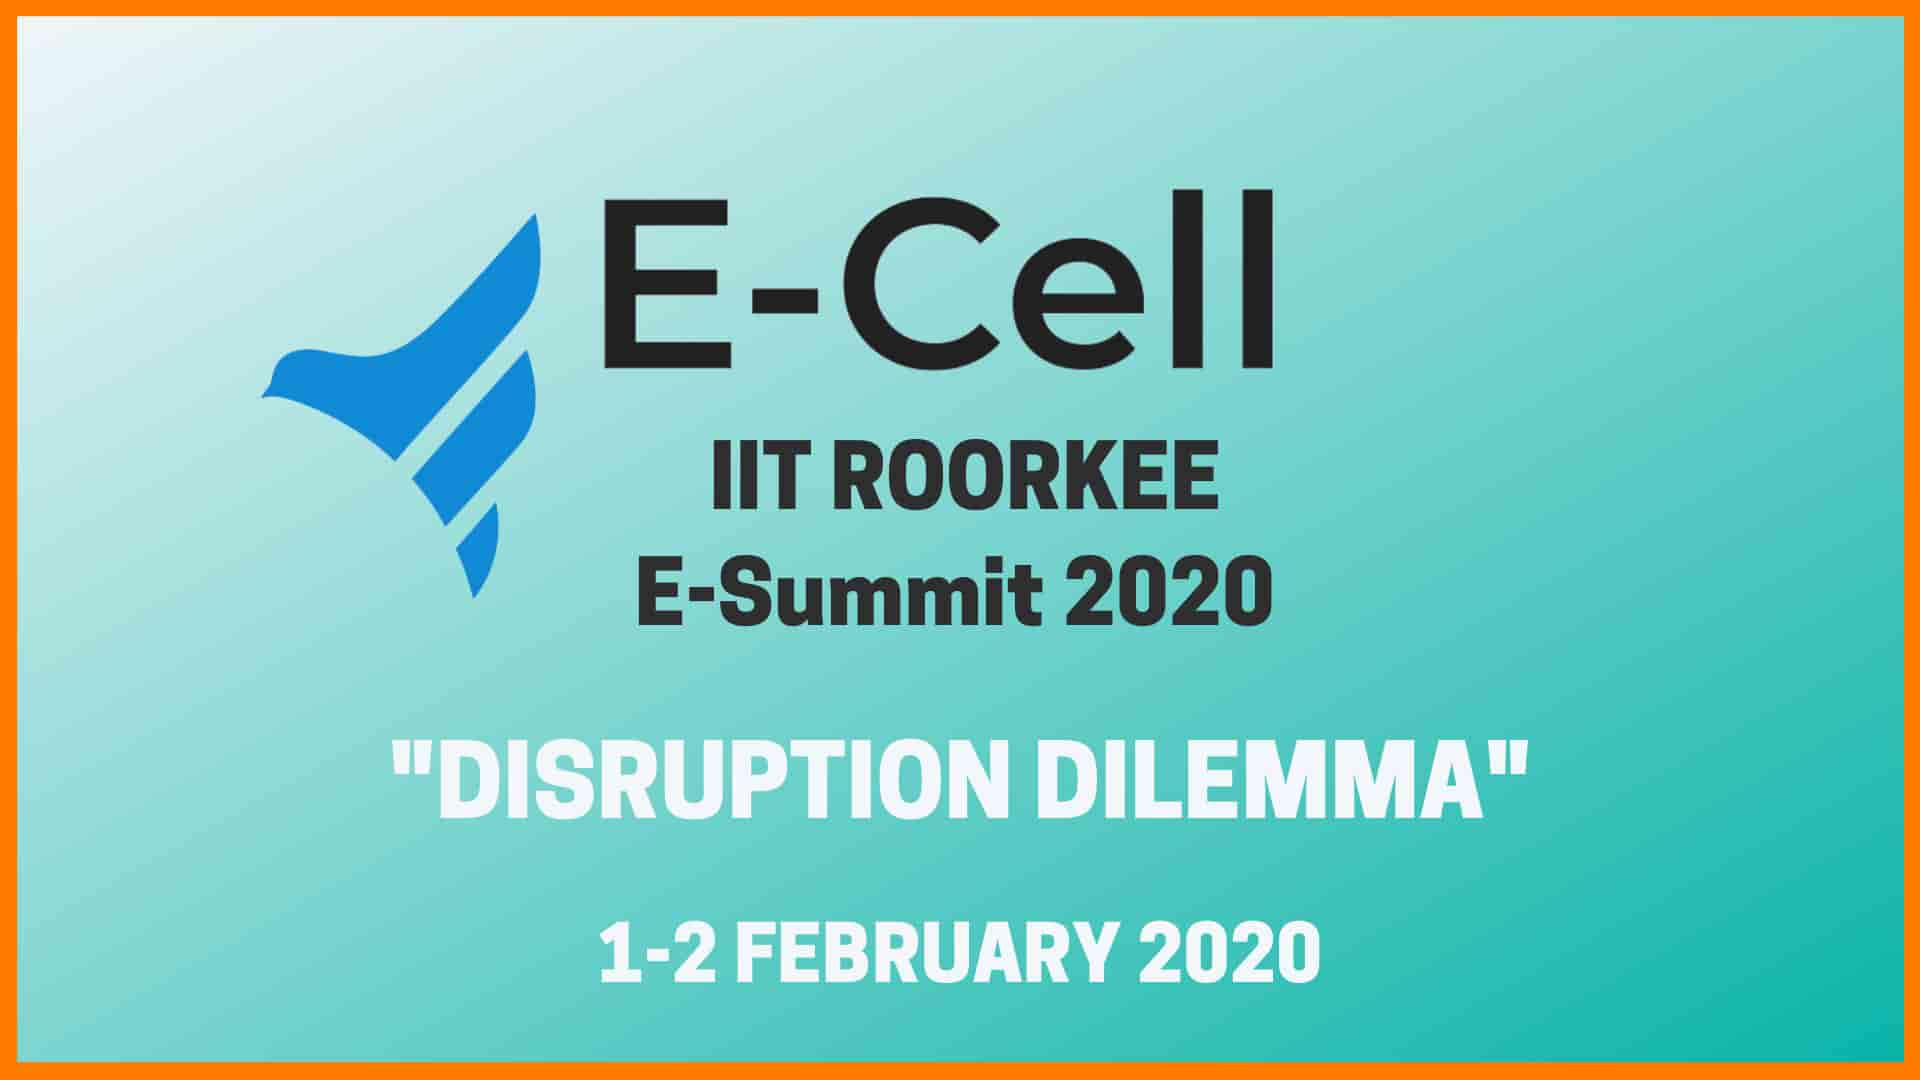 E-Cell IIT-Roorkee is Organizing E-Summit 2020 on 1-2 February